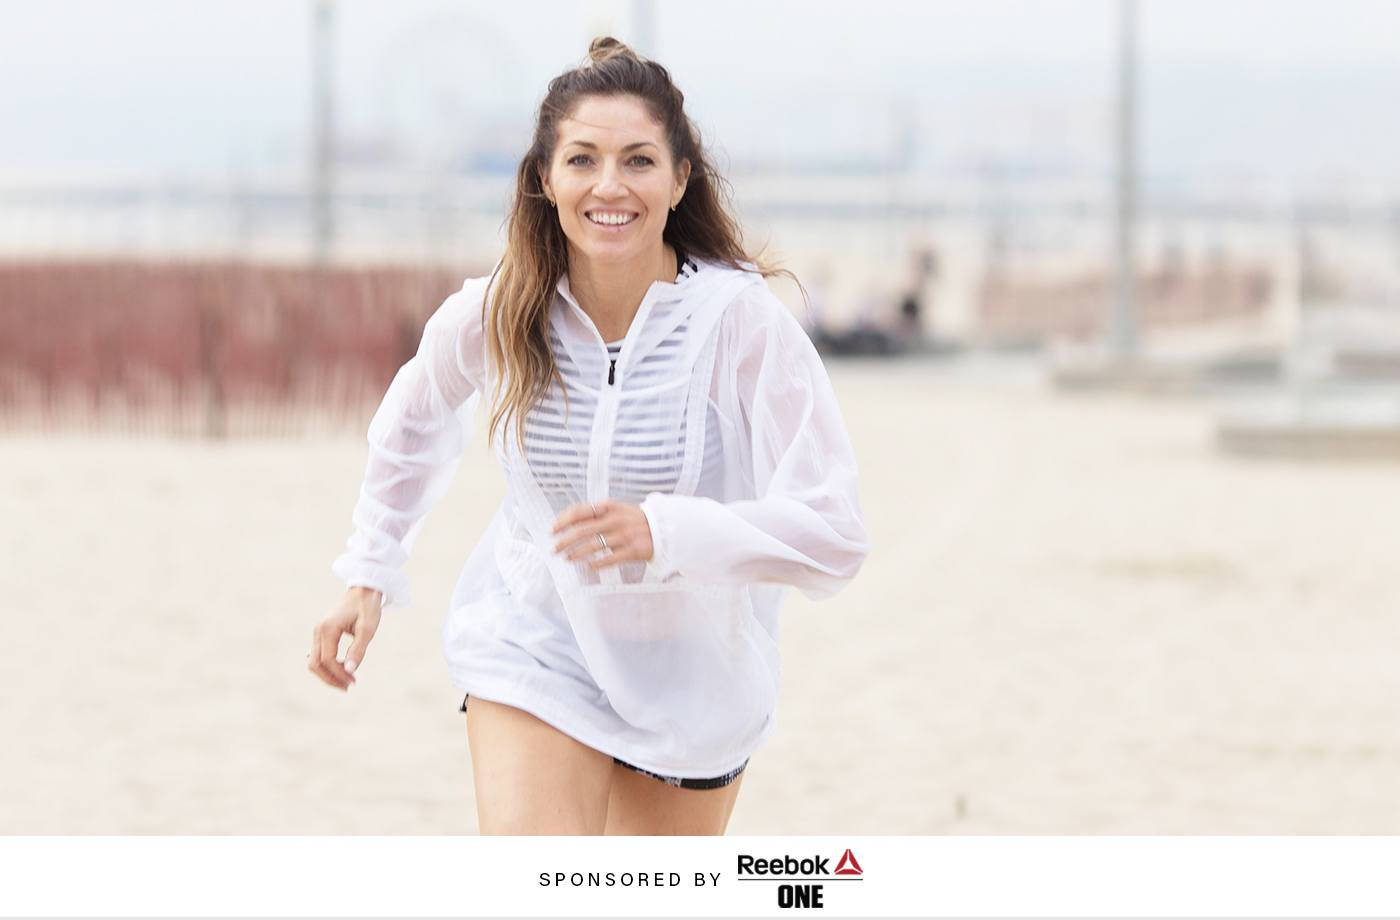 Thumbnail for Trying to make it in the fitness biz? Take this advice from Nina Dobrev's trainer